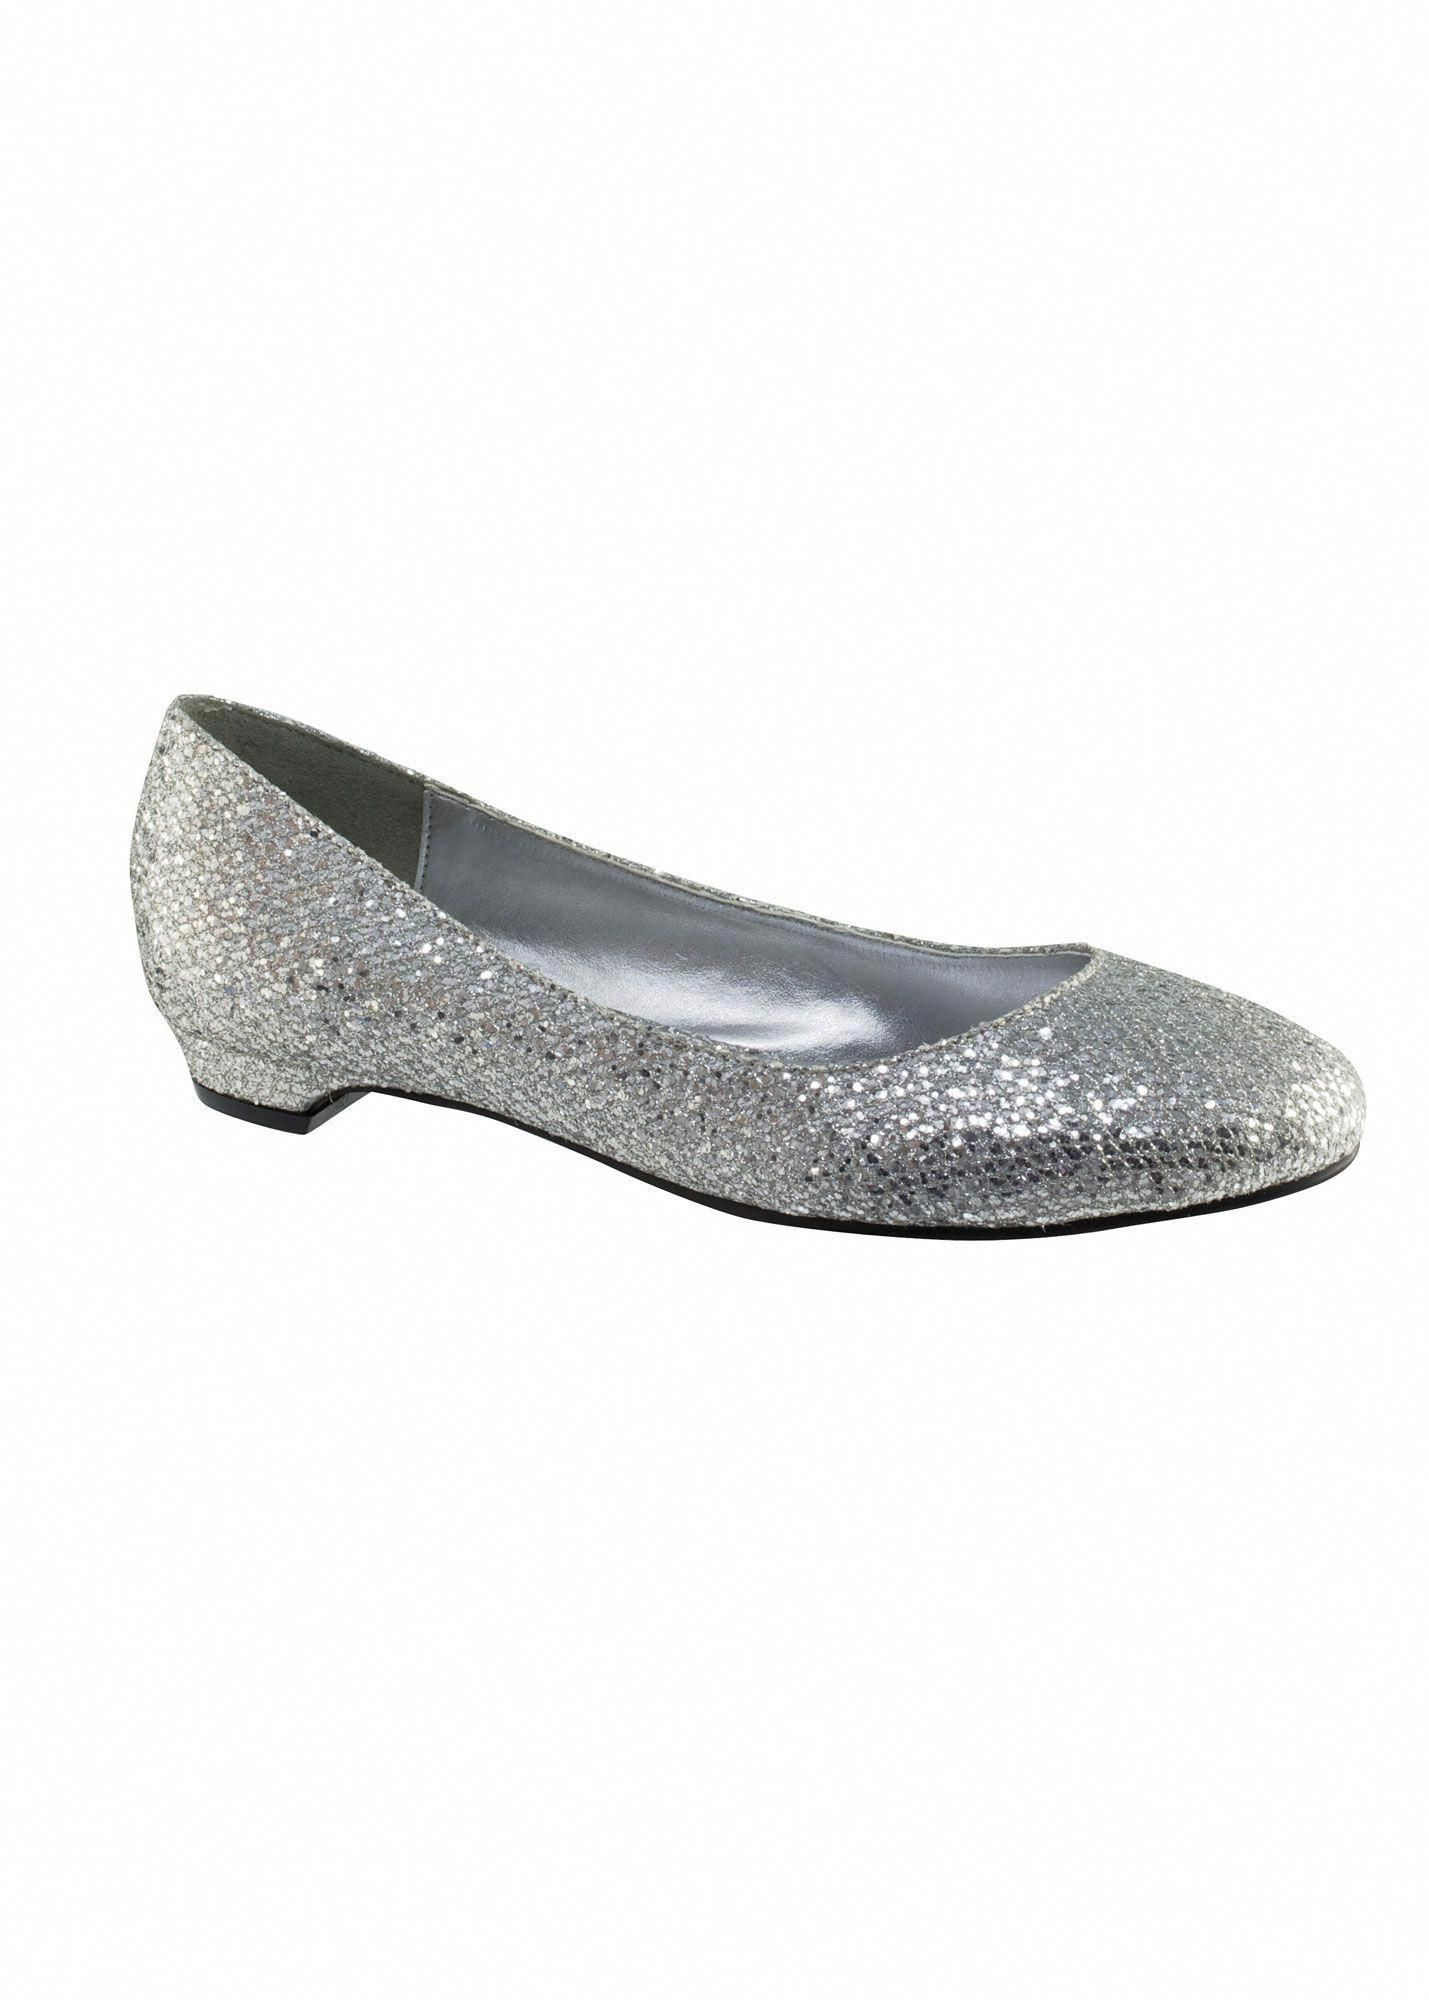 83c830e446d6 Touch Ups Tamara 415 - Silver Glitter Flat Prom Shoes Online   thepromdresses  Promshoes